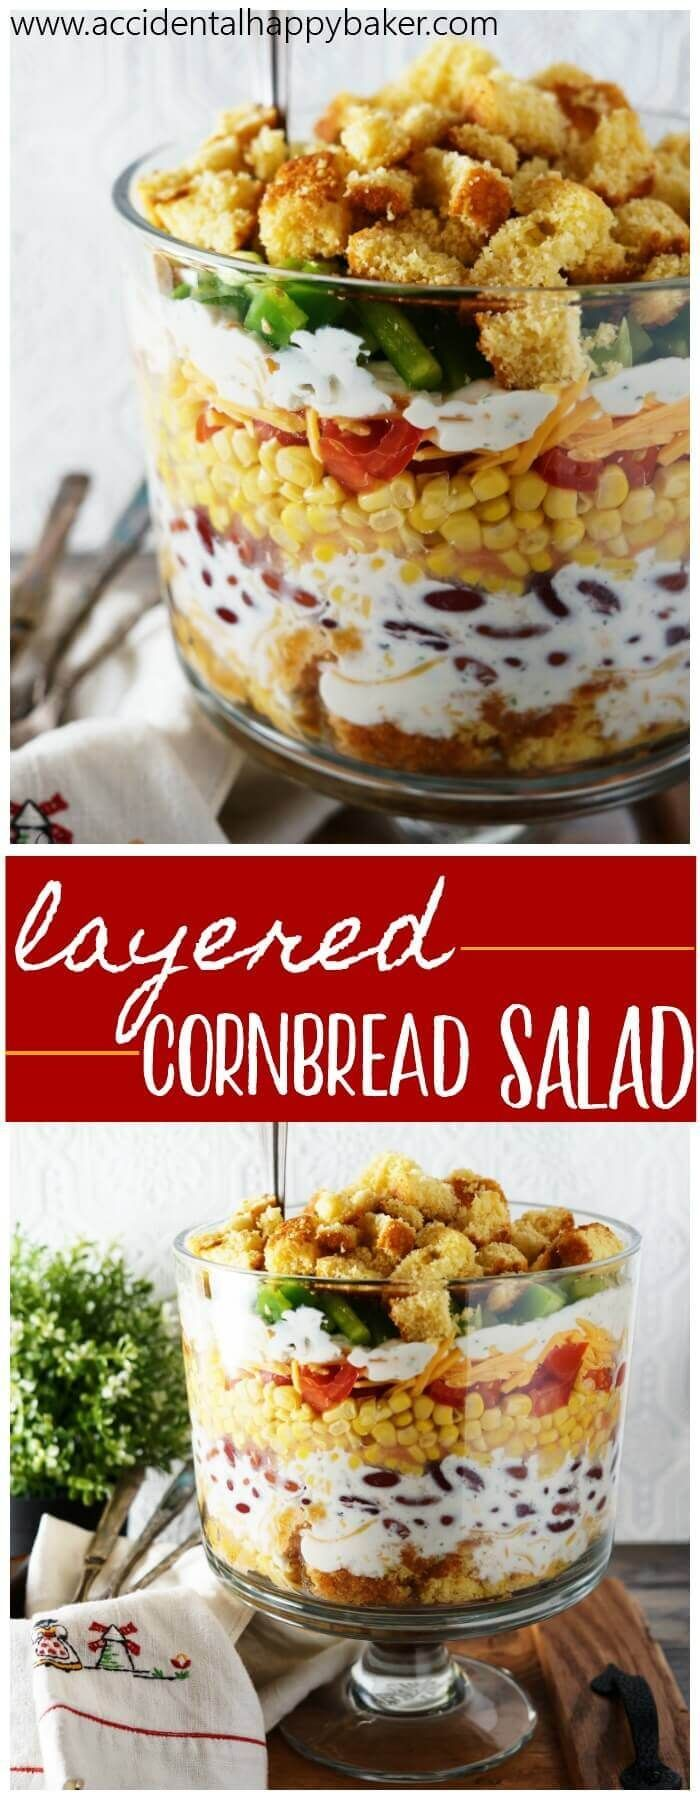 Layered cornbread salad is so bright and colorful. Fresh veggies are layered high with cornbread, cheese and ranch dressing. It's crunchy, creamy, savory, and with the cornbread, just a hint of sweet as well for a combination that can't be beat.